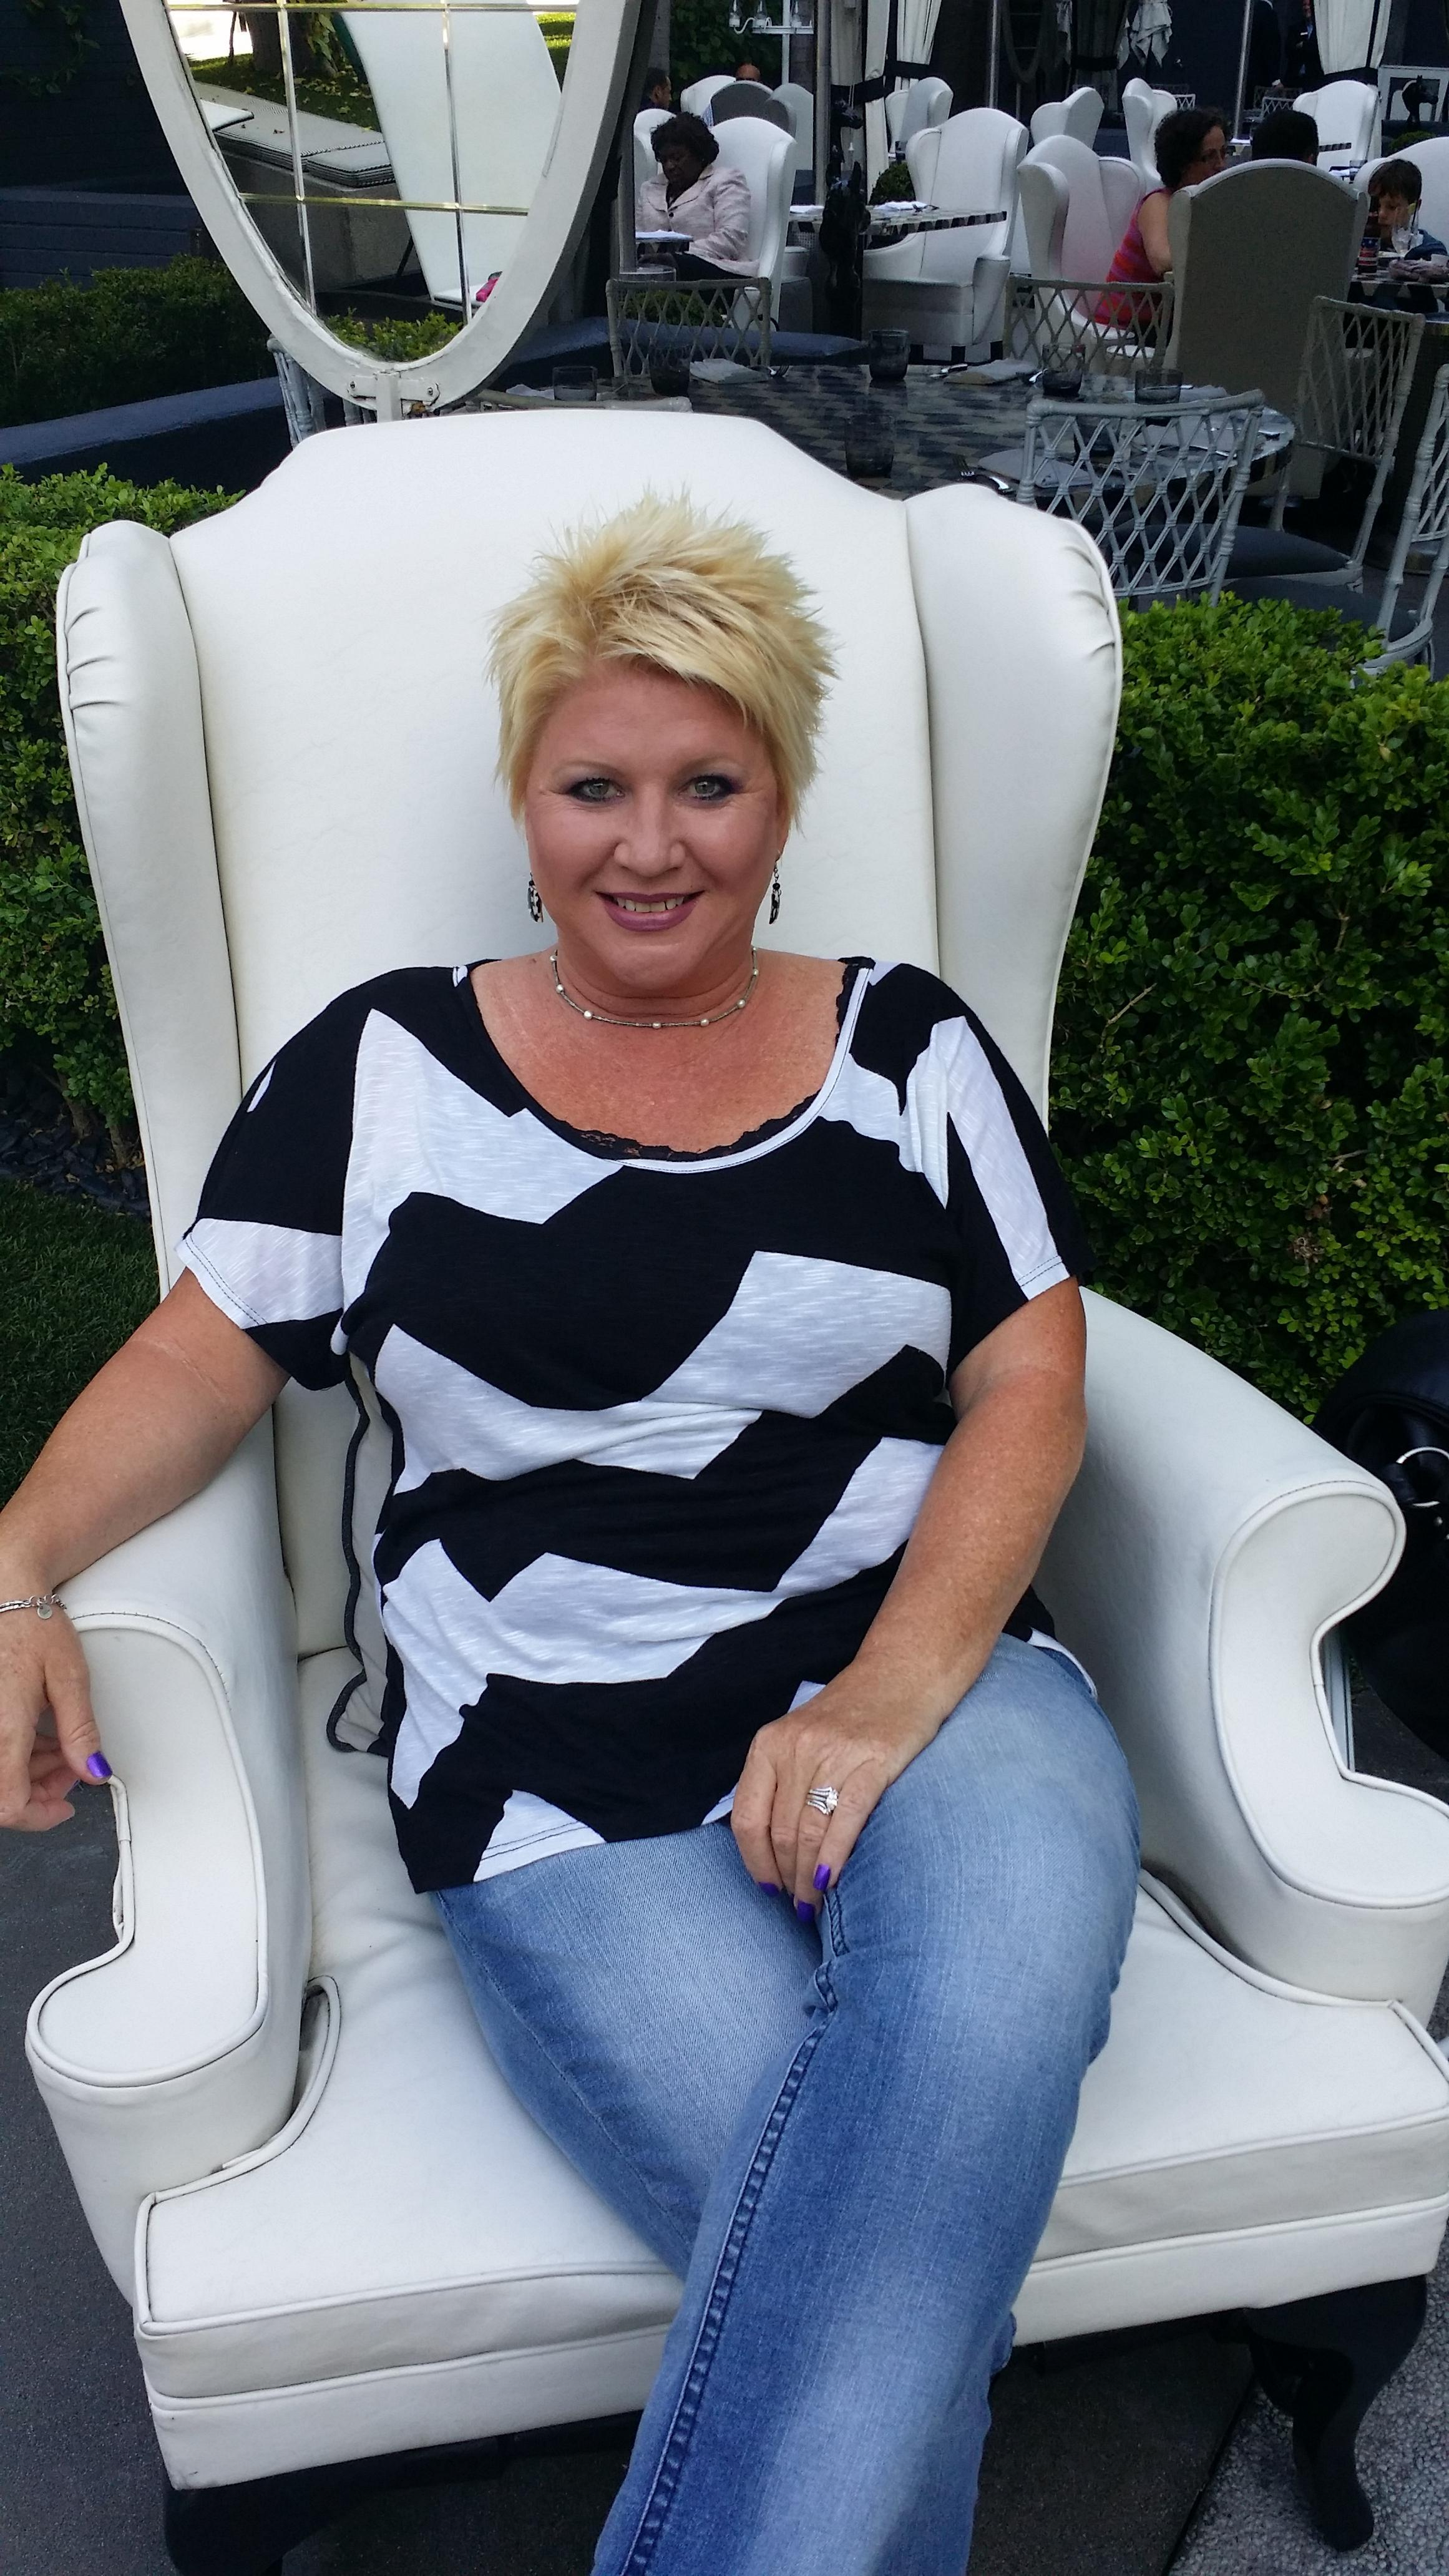 Jeri Woodward, Realtor - Private Label Realty